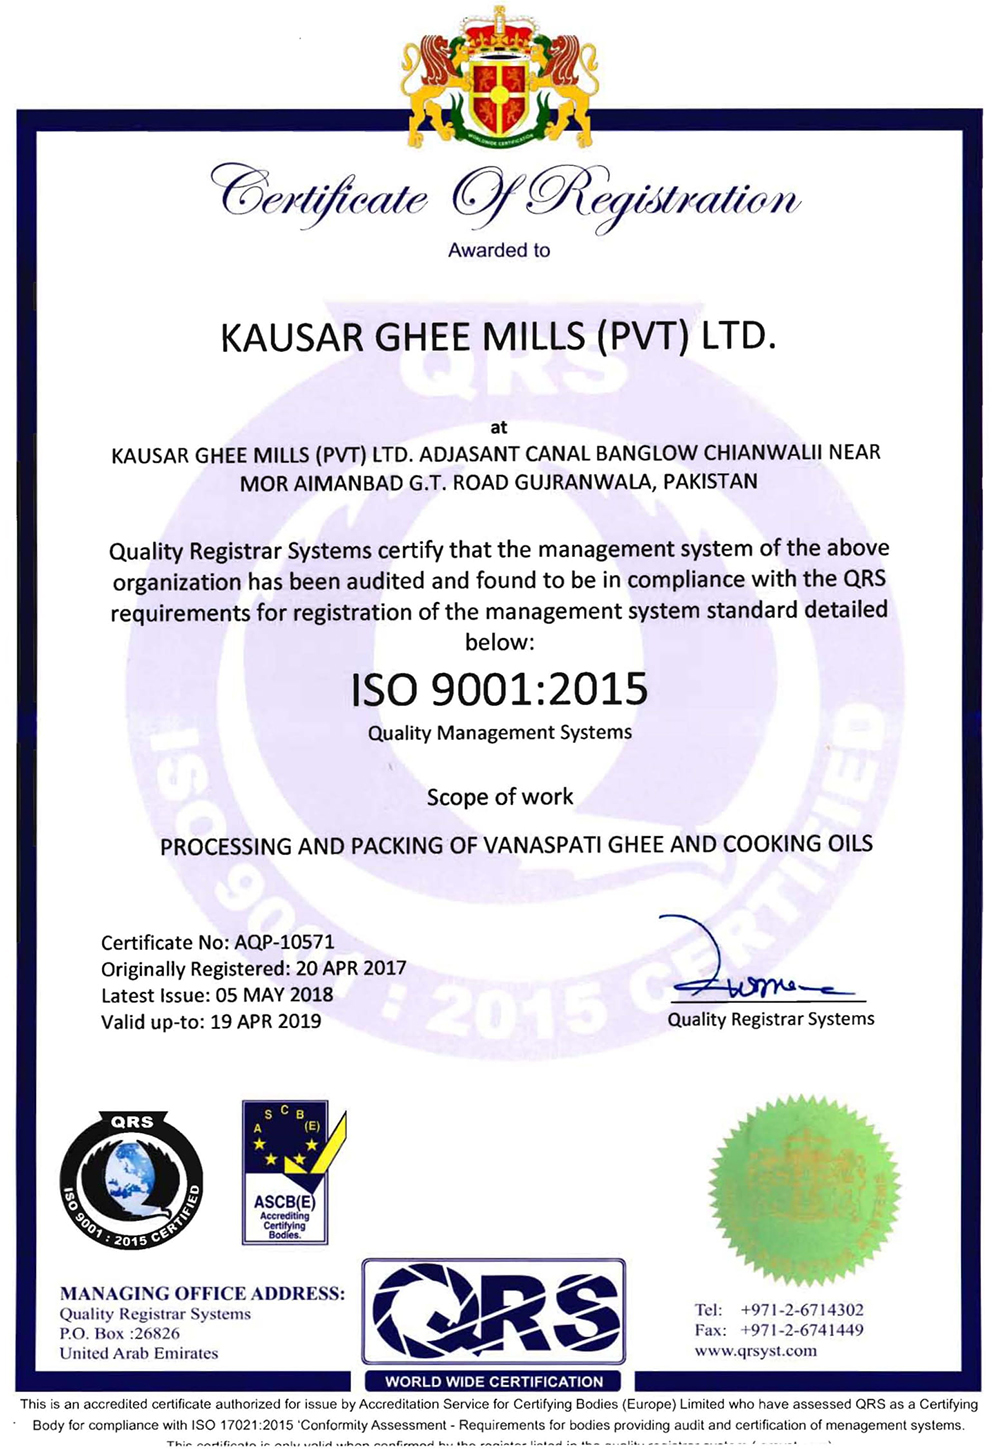 kausar-corporate-qc-certifications-ghee-1